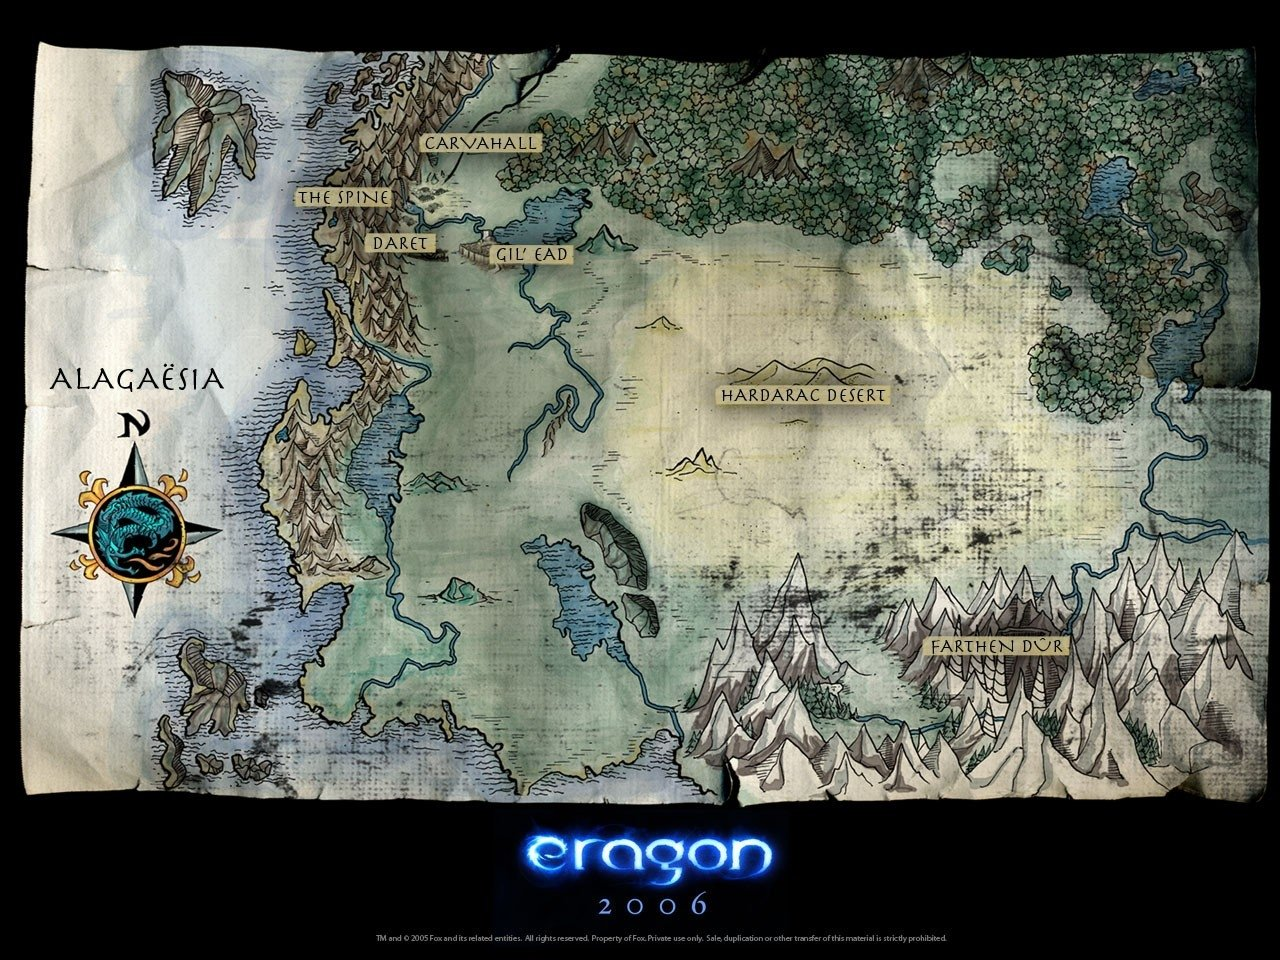 un wallpaper del film Eragon